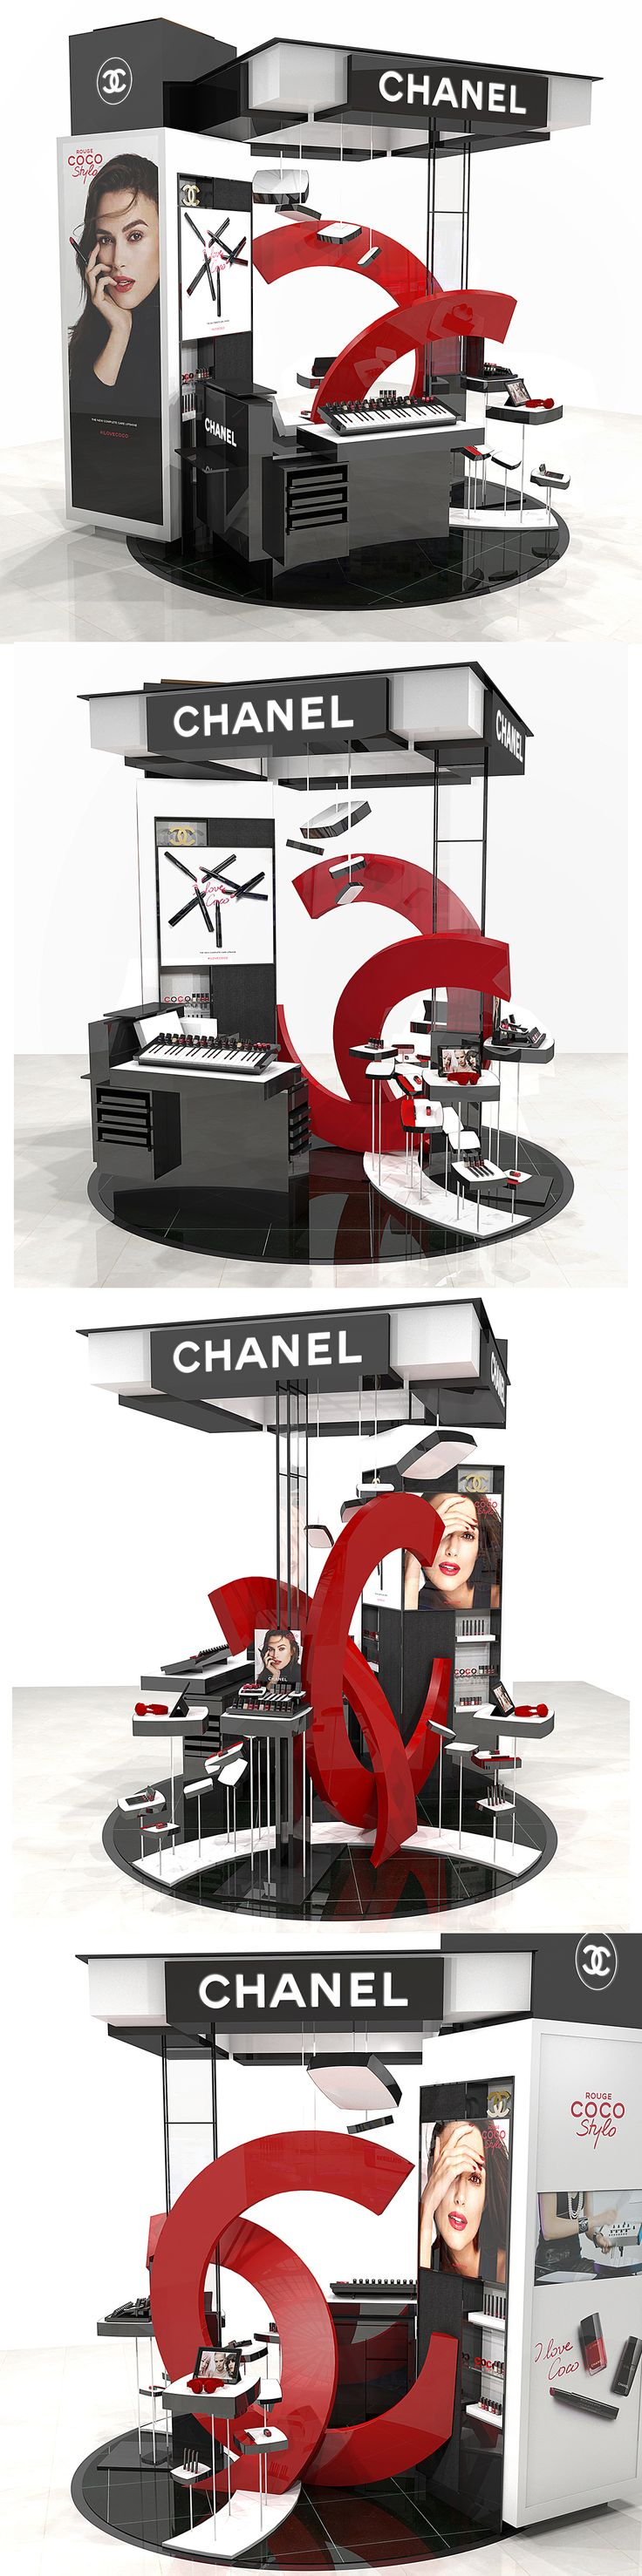 Animation for Rouge Coco Stylo de CHANEL. Design Studio HOMEWeRK in collaboration with CHANEL artistic direction.